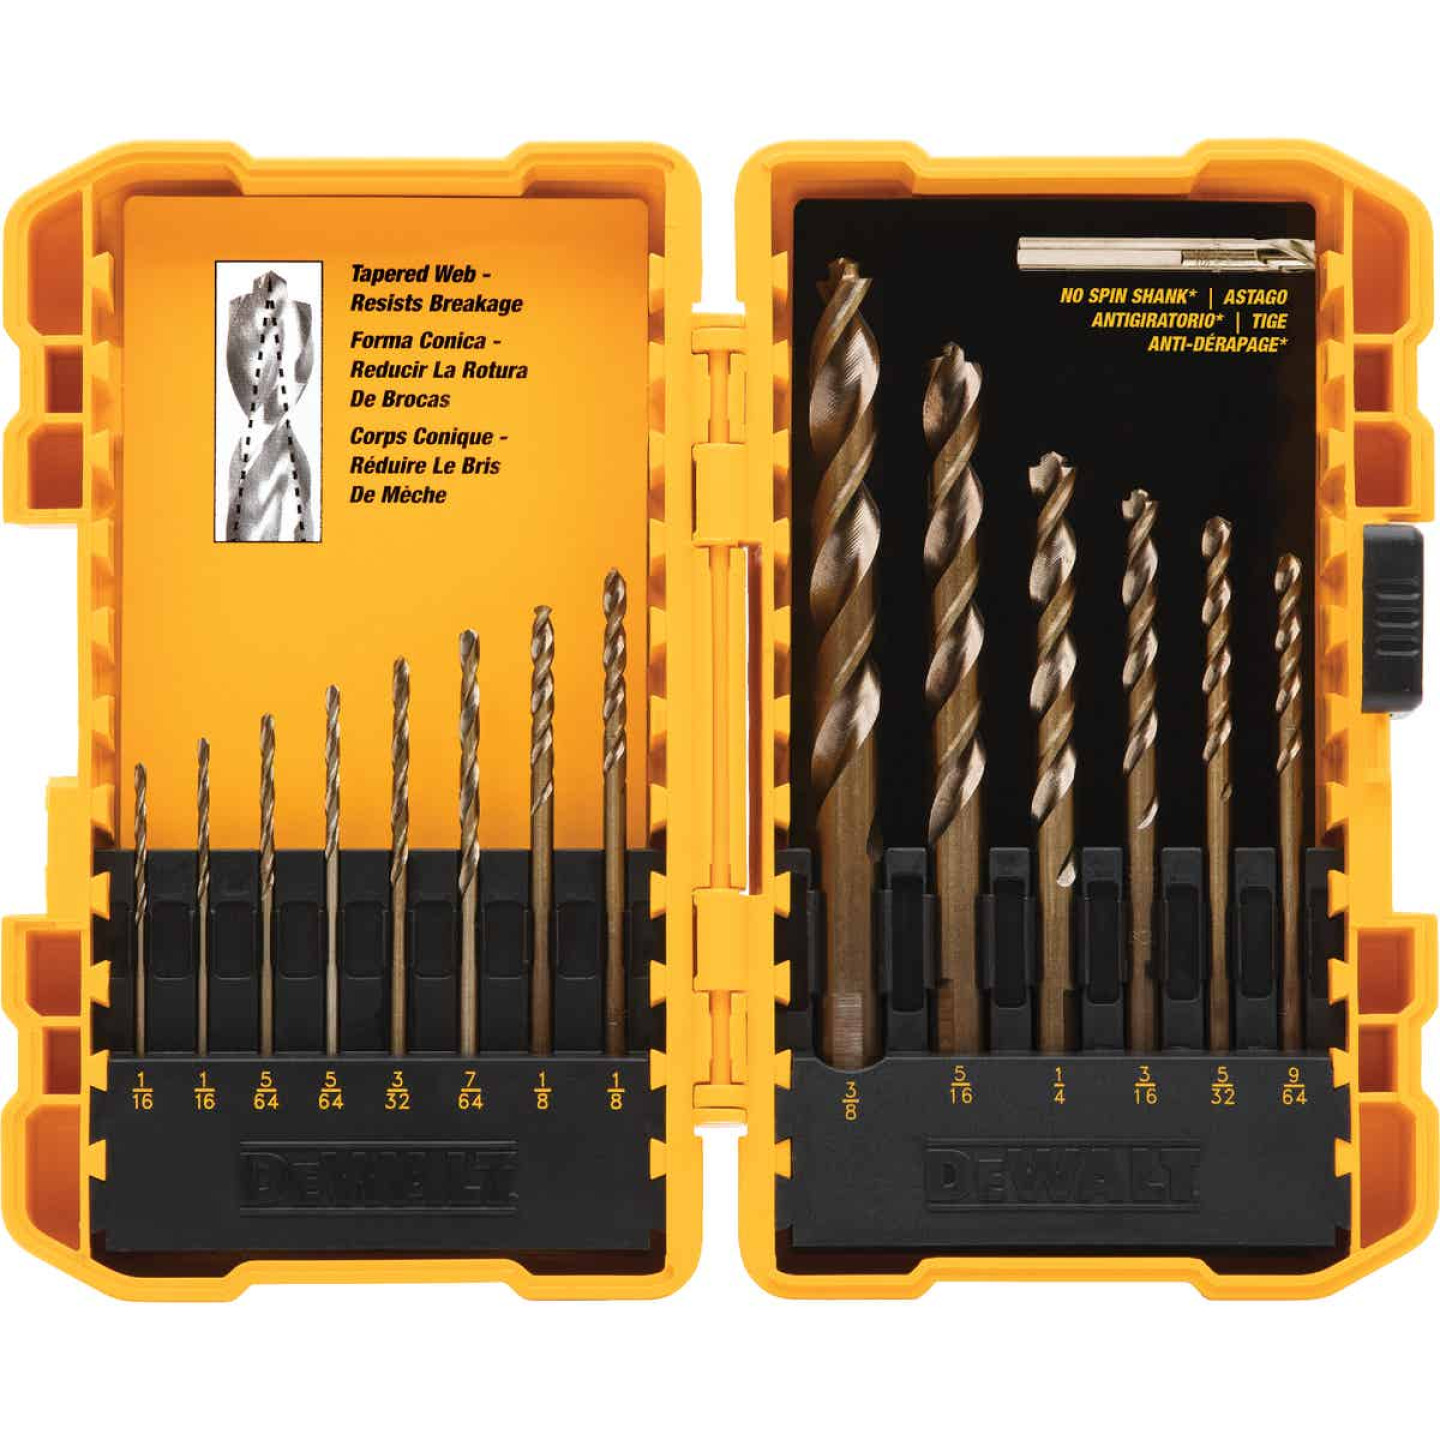 DeWalt 14-Piece Gold Ferrous Oxide Pilot Point General Purpose Drill Bit Set, 1/16 In. thru 3/8 In. Image 1